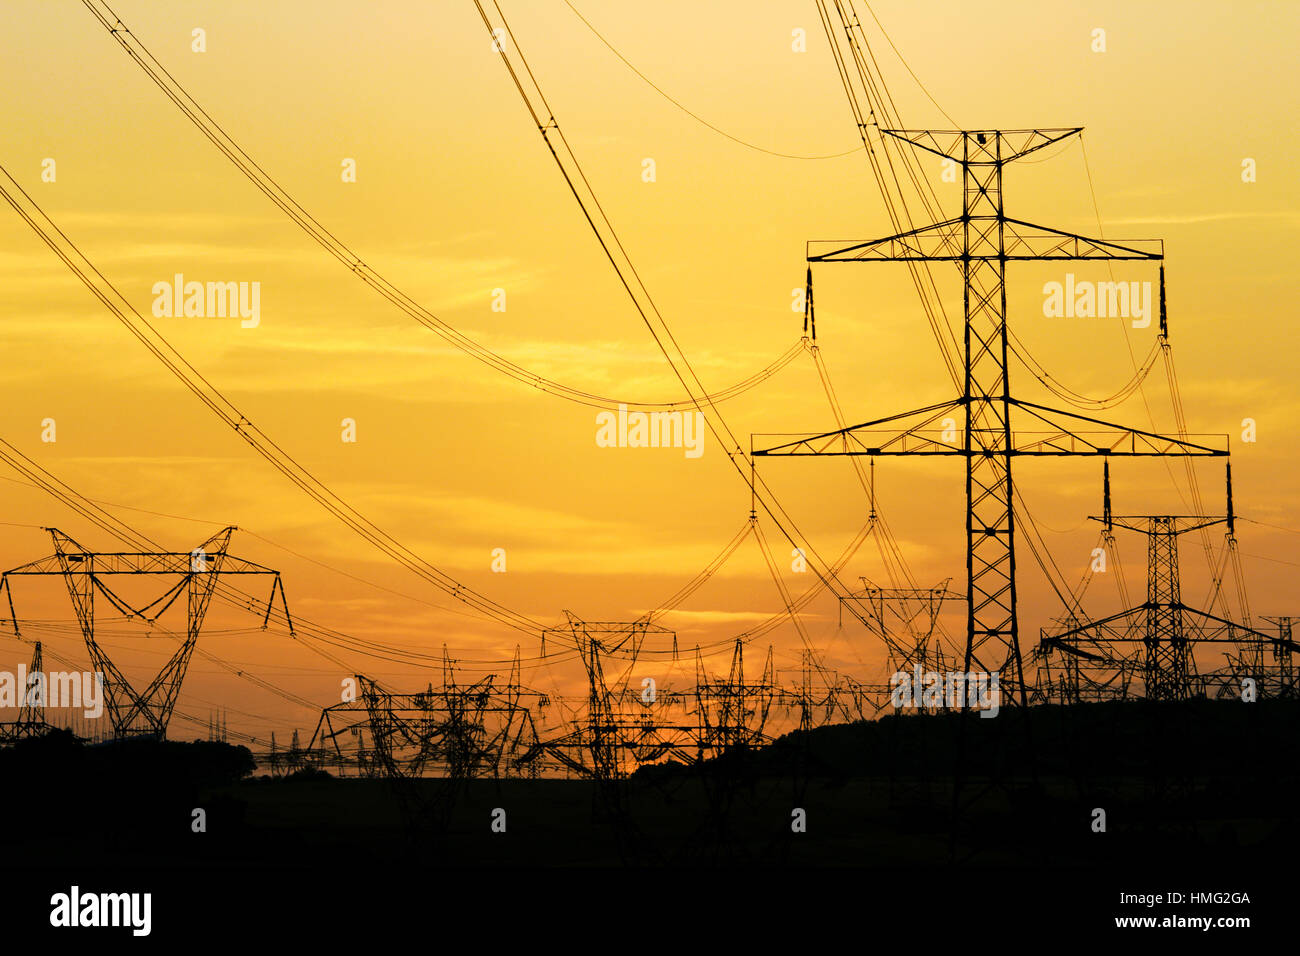 field of high voltage towers under dramatic sky - Stock Image